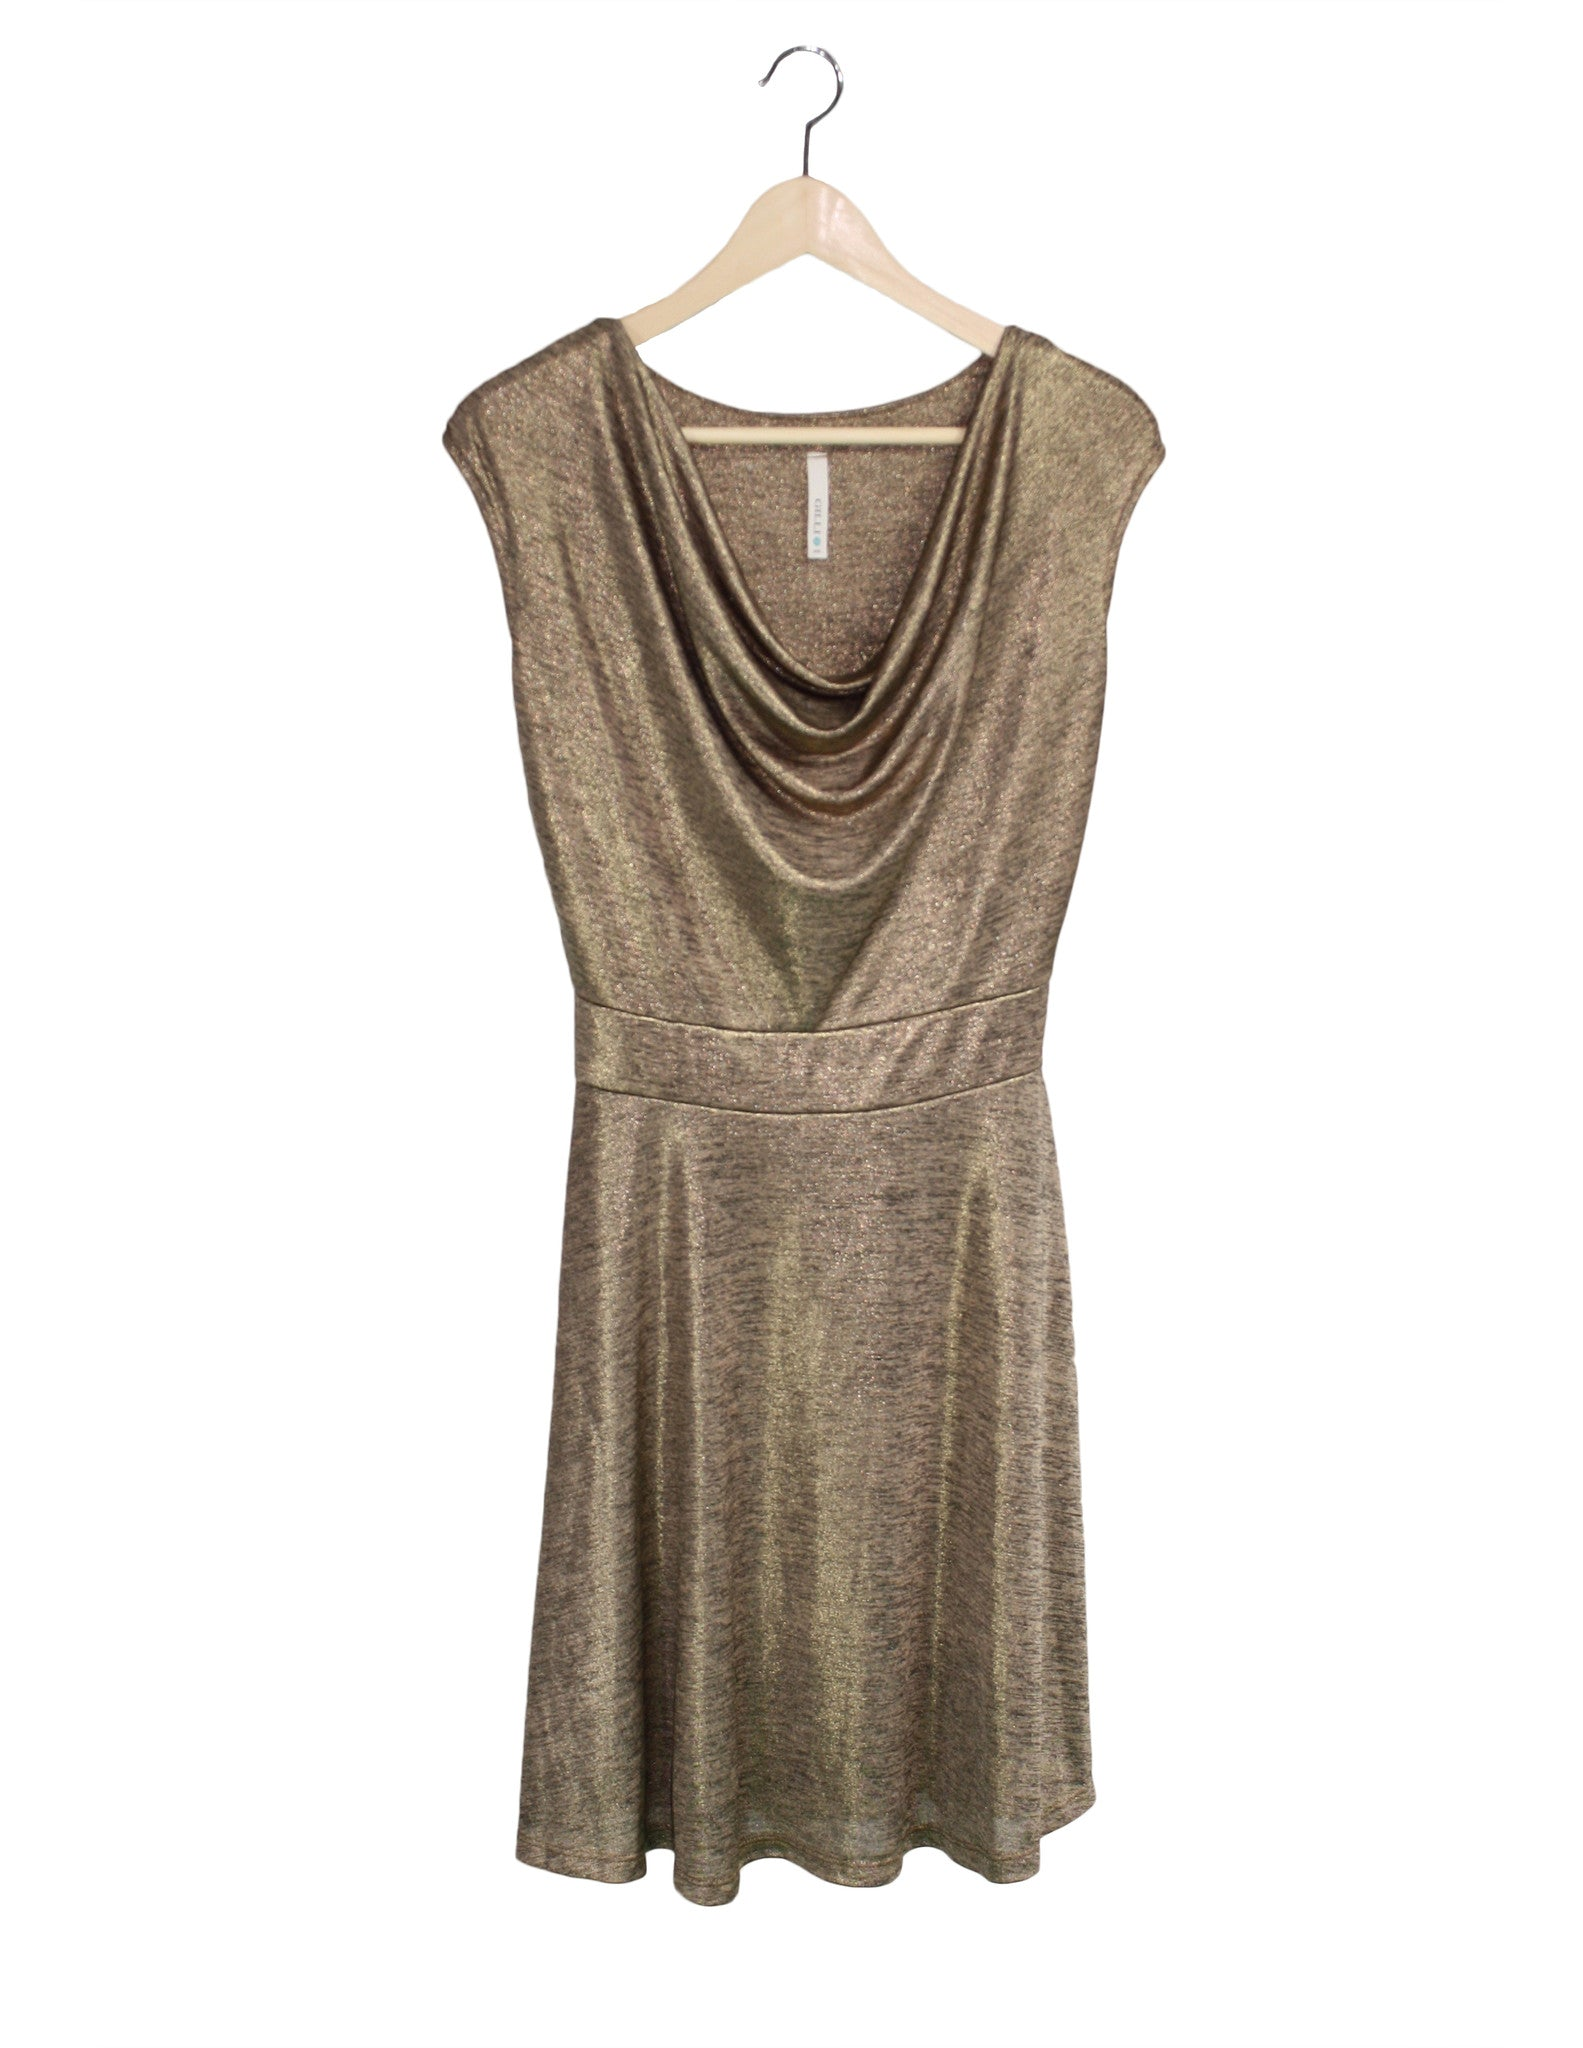 Gold Glam Draped Dress / Ethical Fashion